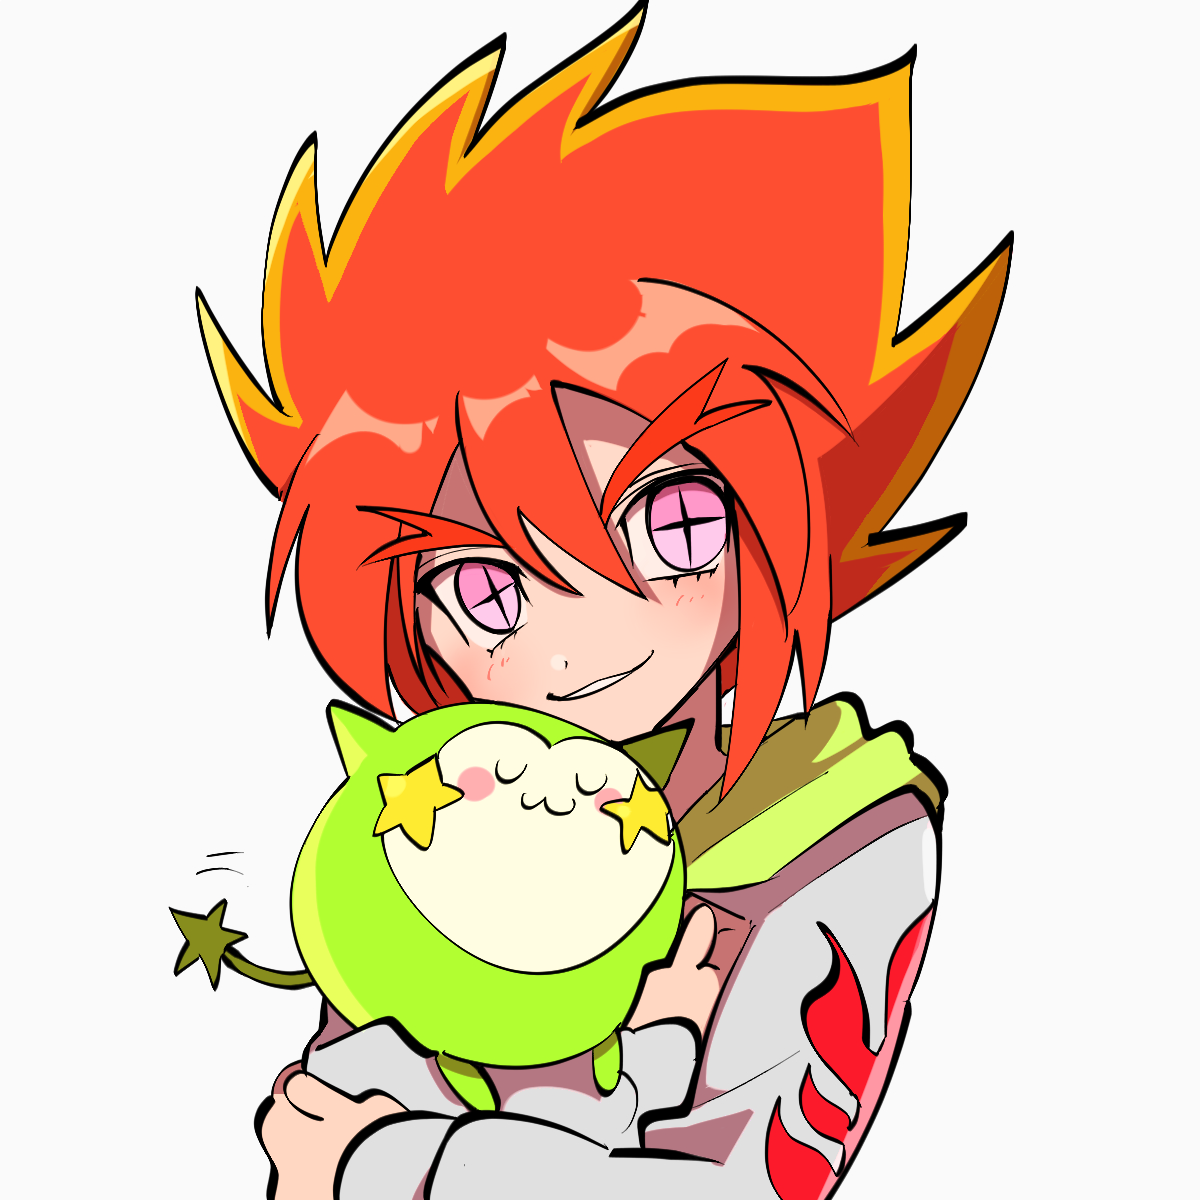 Shiro CJ26w1l9NRFOU also Galaxy Pics besides 2071492 as well 10 disgustingly awesome slime monsters likewise 889232. on anime grin